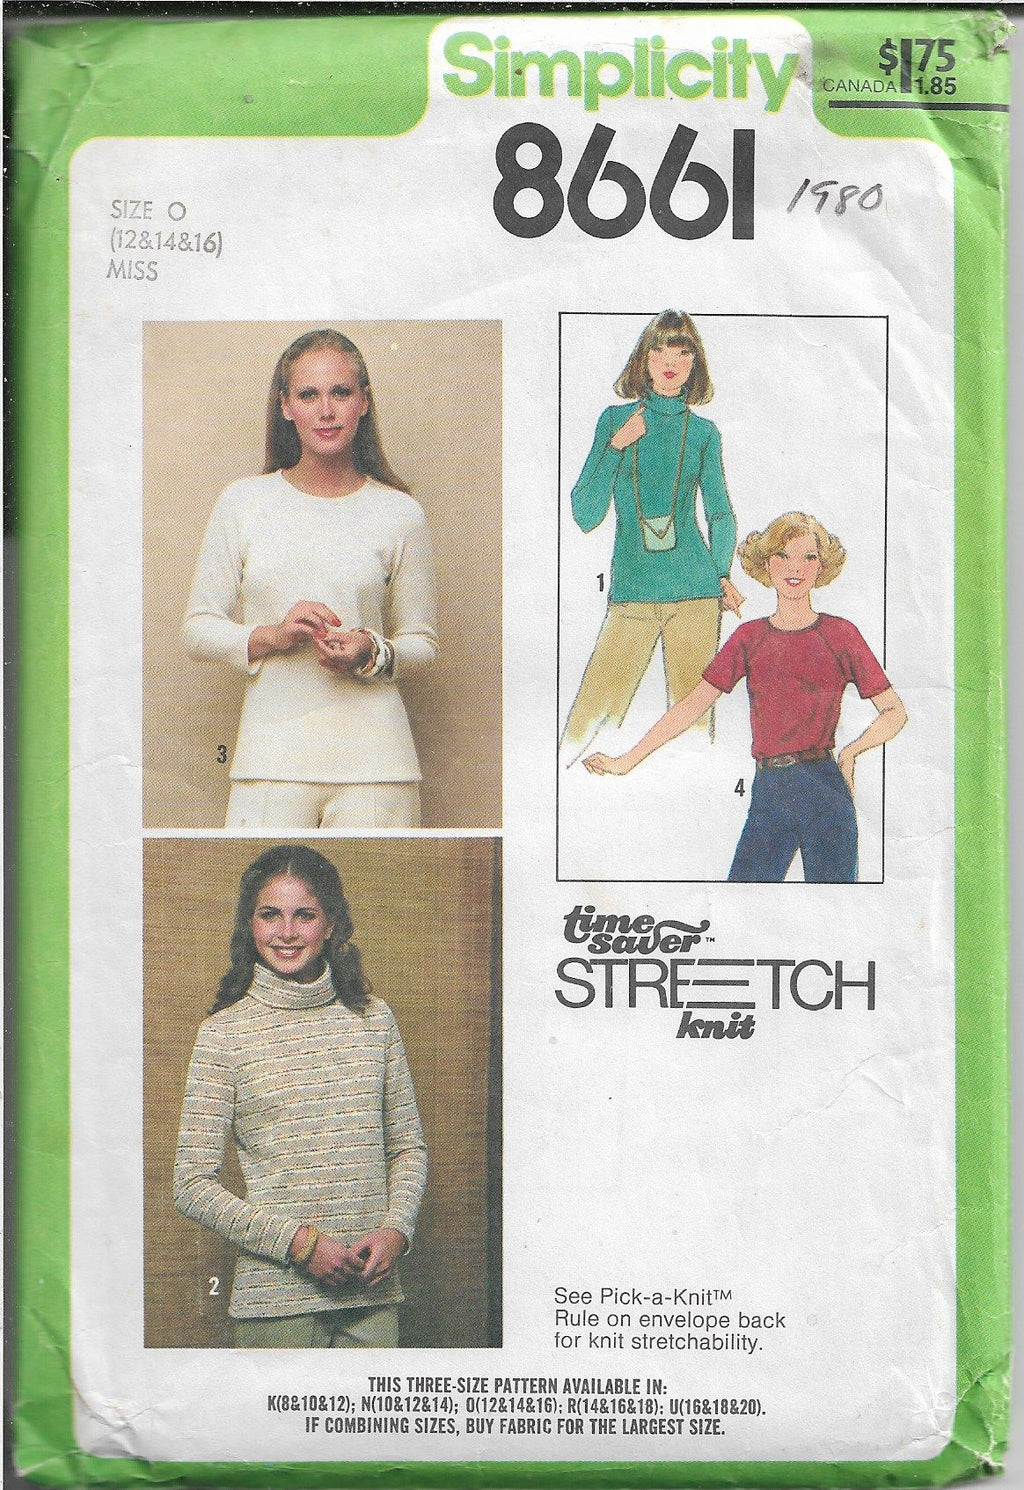 Simplicity 8661 Ladies Pull Over Top Vintage Sewing Pattern 1970s - VintageStitching - Vintage Sewing Patterns